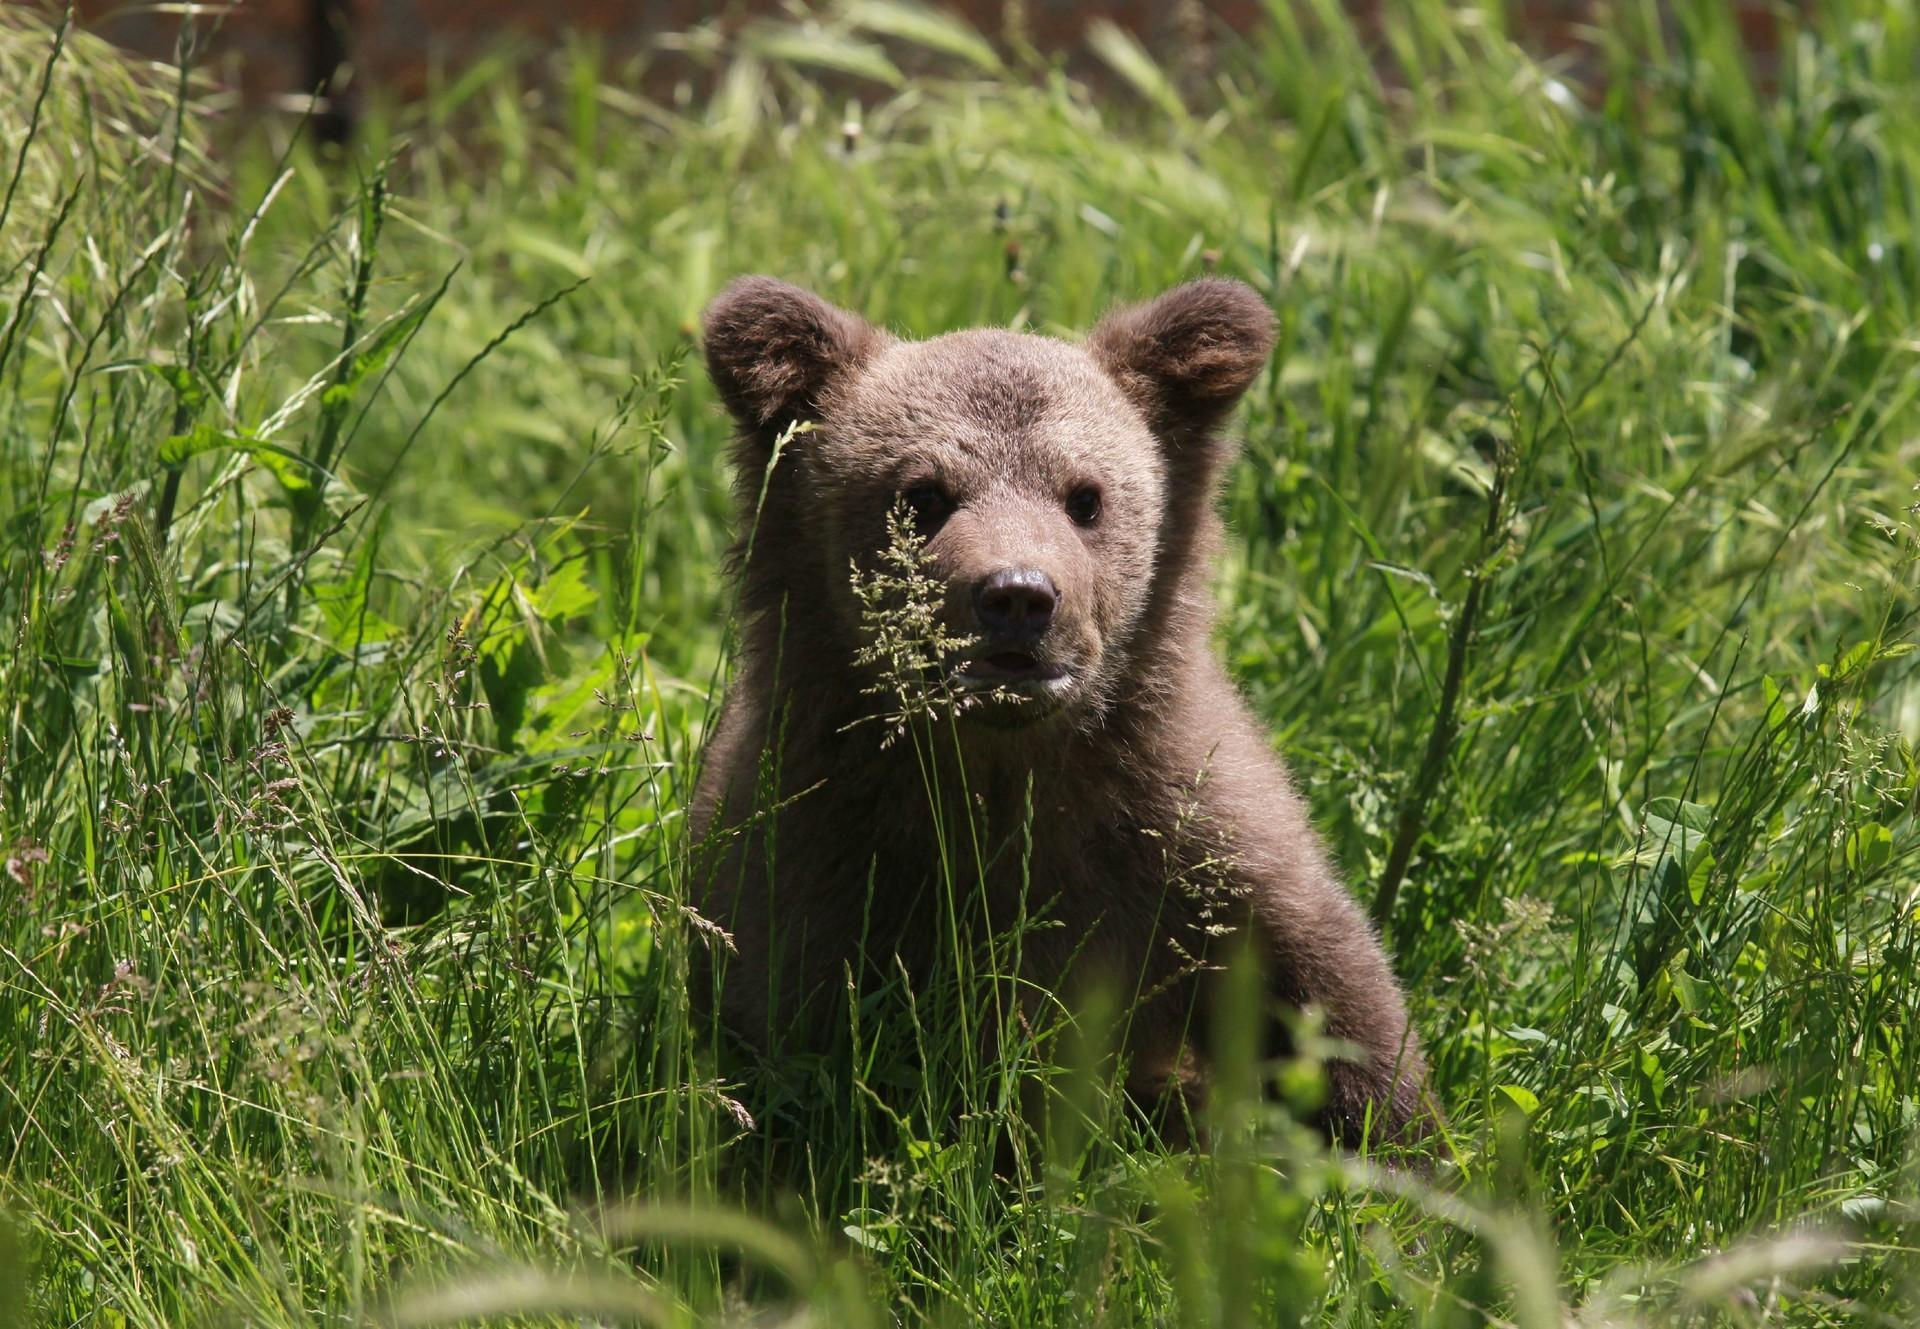 Bear cub in BEAR SANCTUARY Prishtina